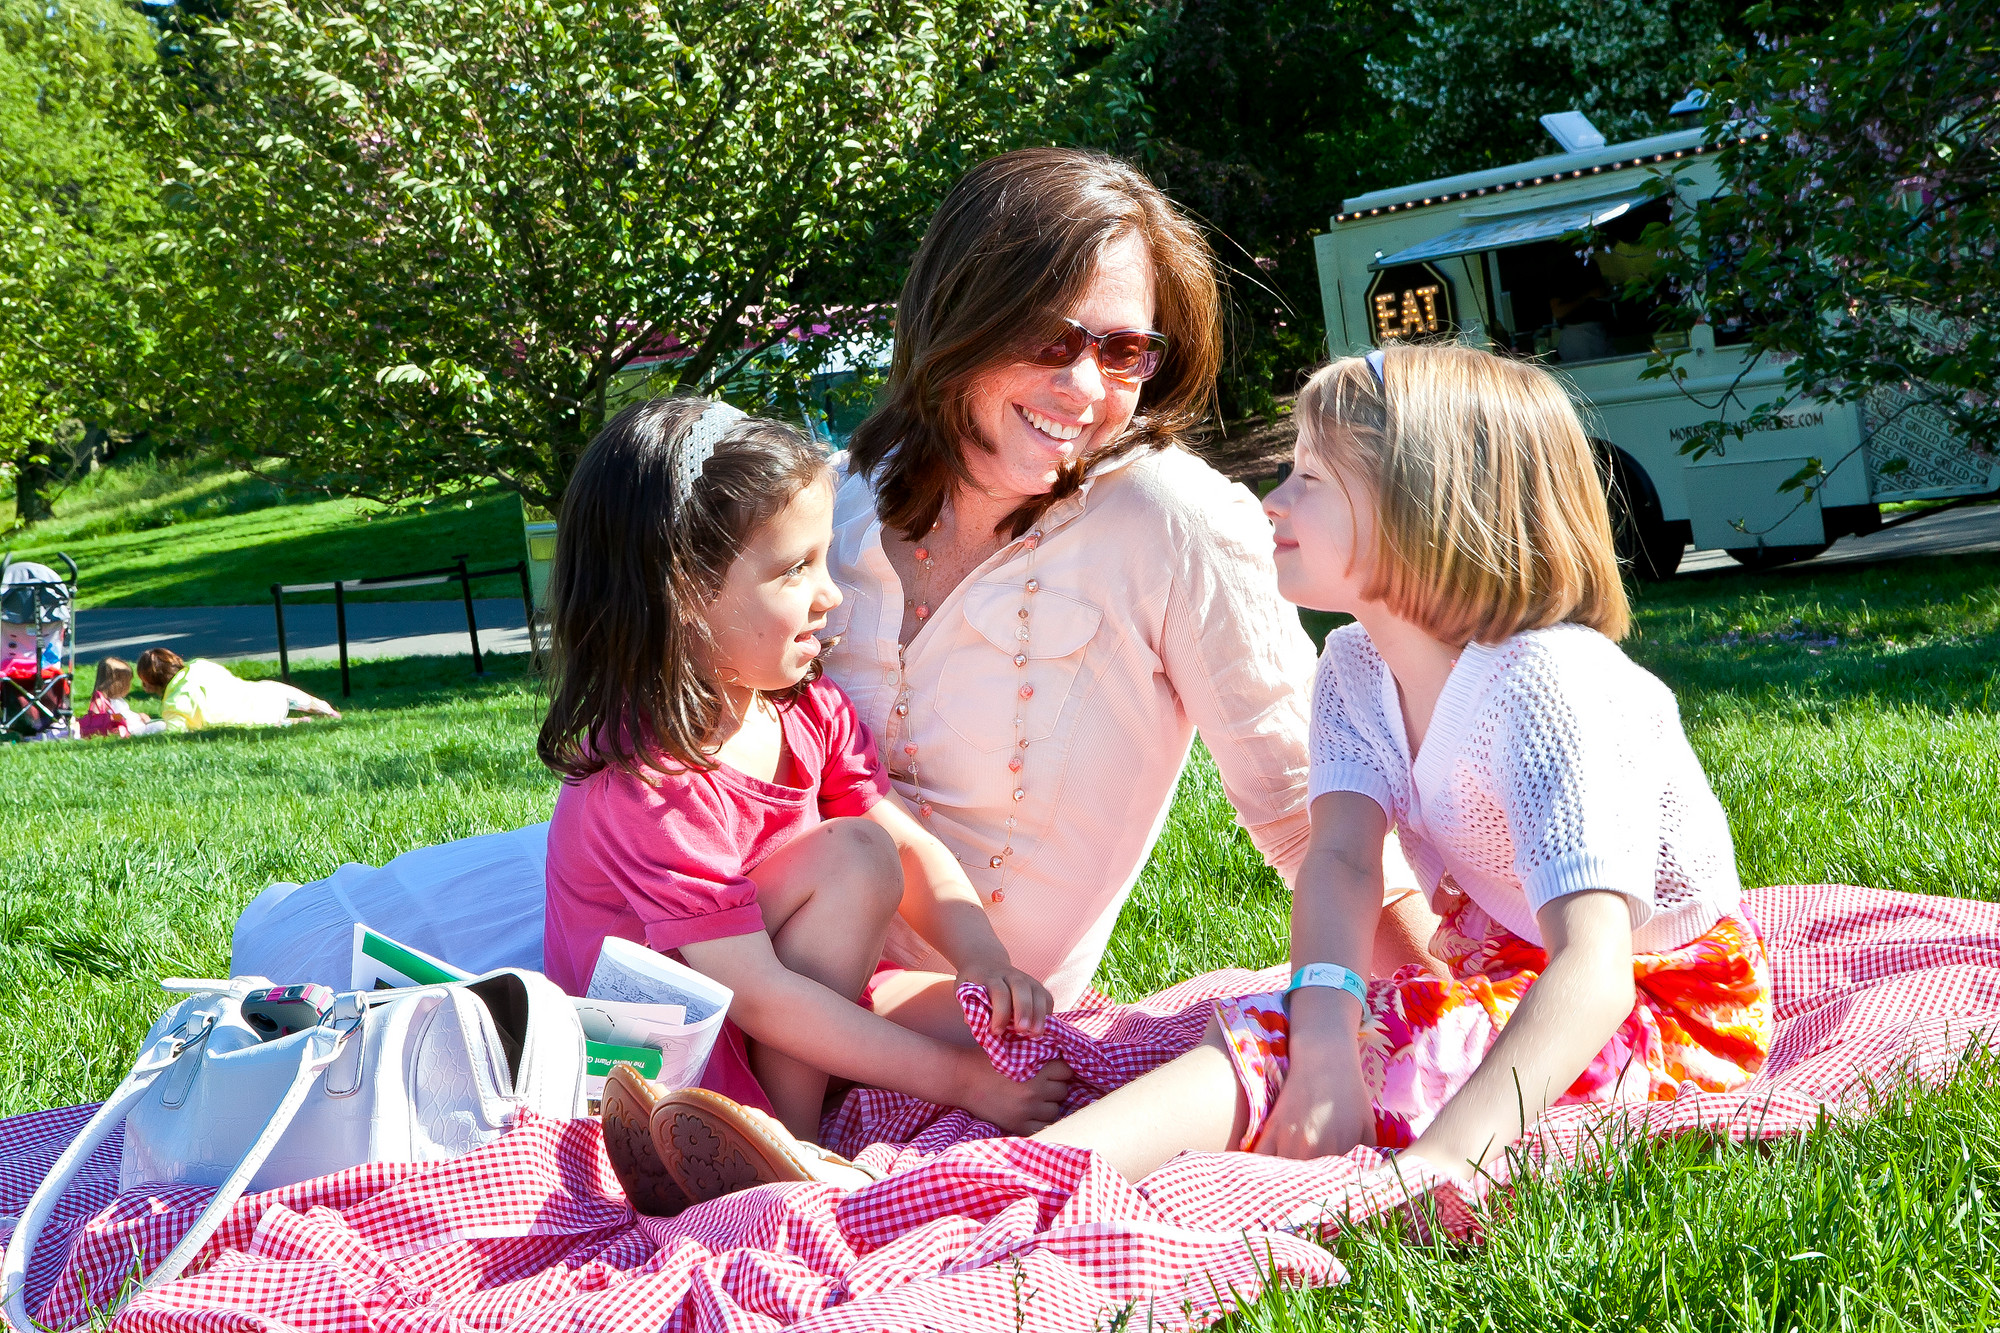 Kathleen Acuti celebrates Mother's Day with her two daughters Megan Acuti, 4, at left,  and Clare Acuti, 7, at right, at New York Botanical Garden on Sunday.